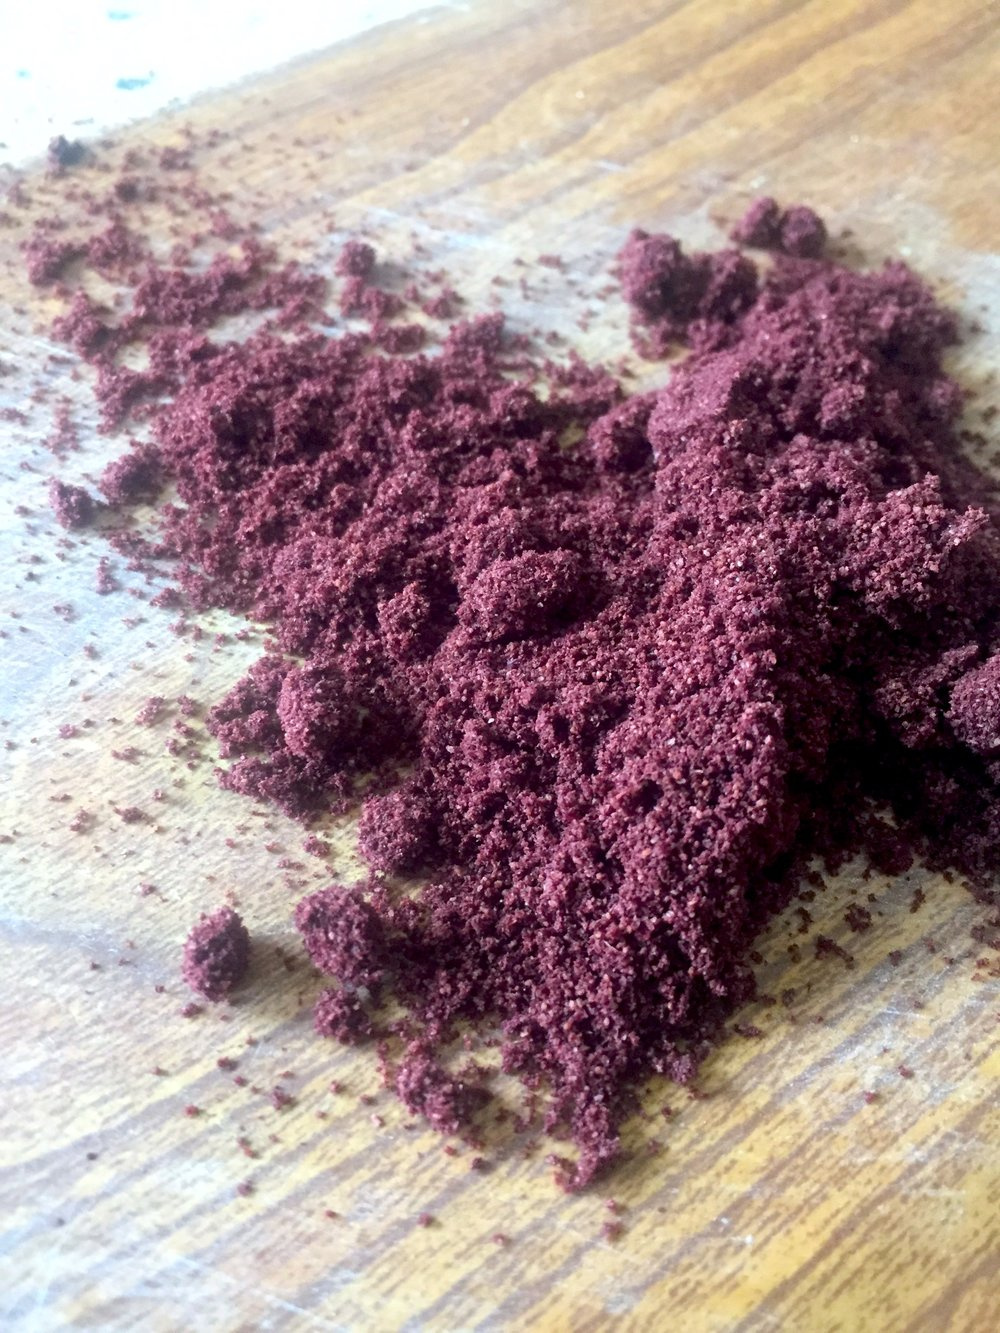 Acai powder has great flavor